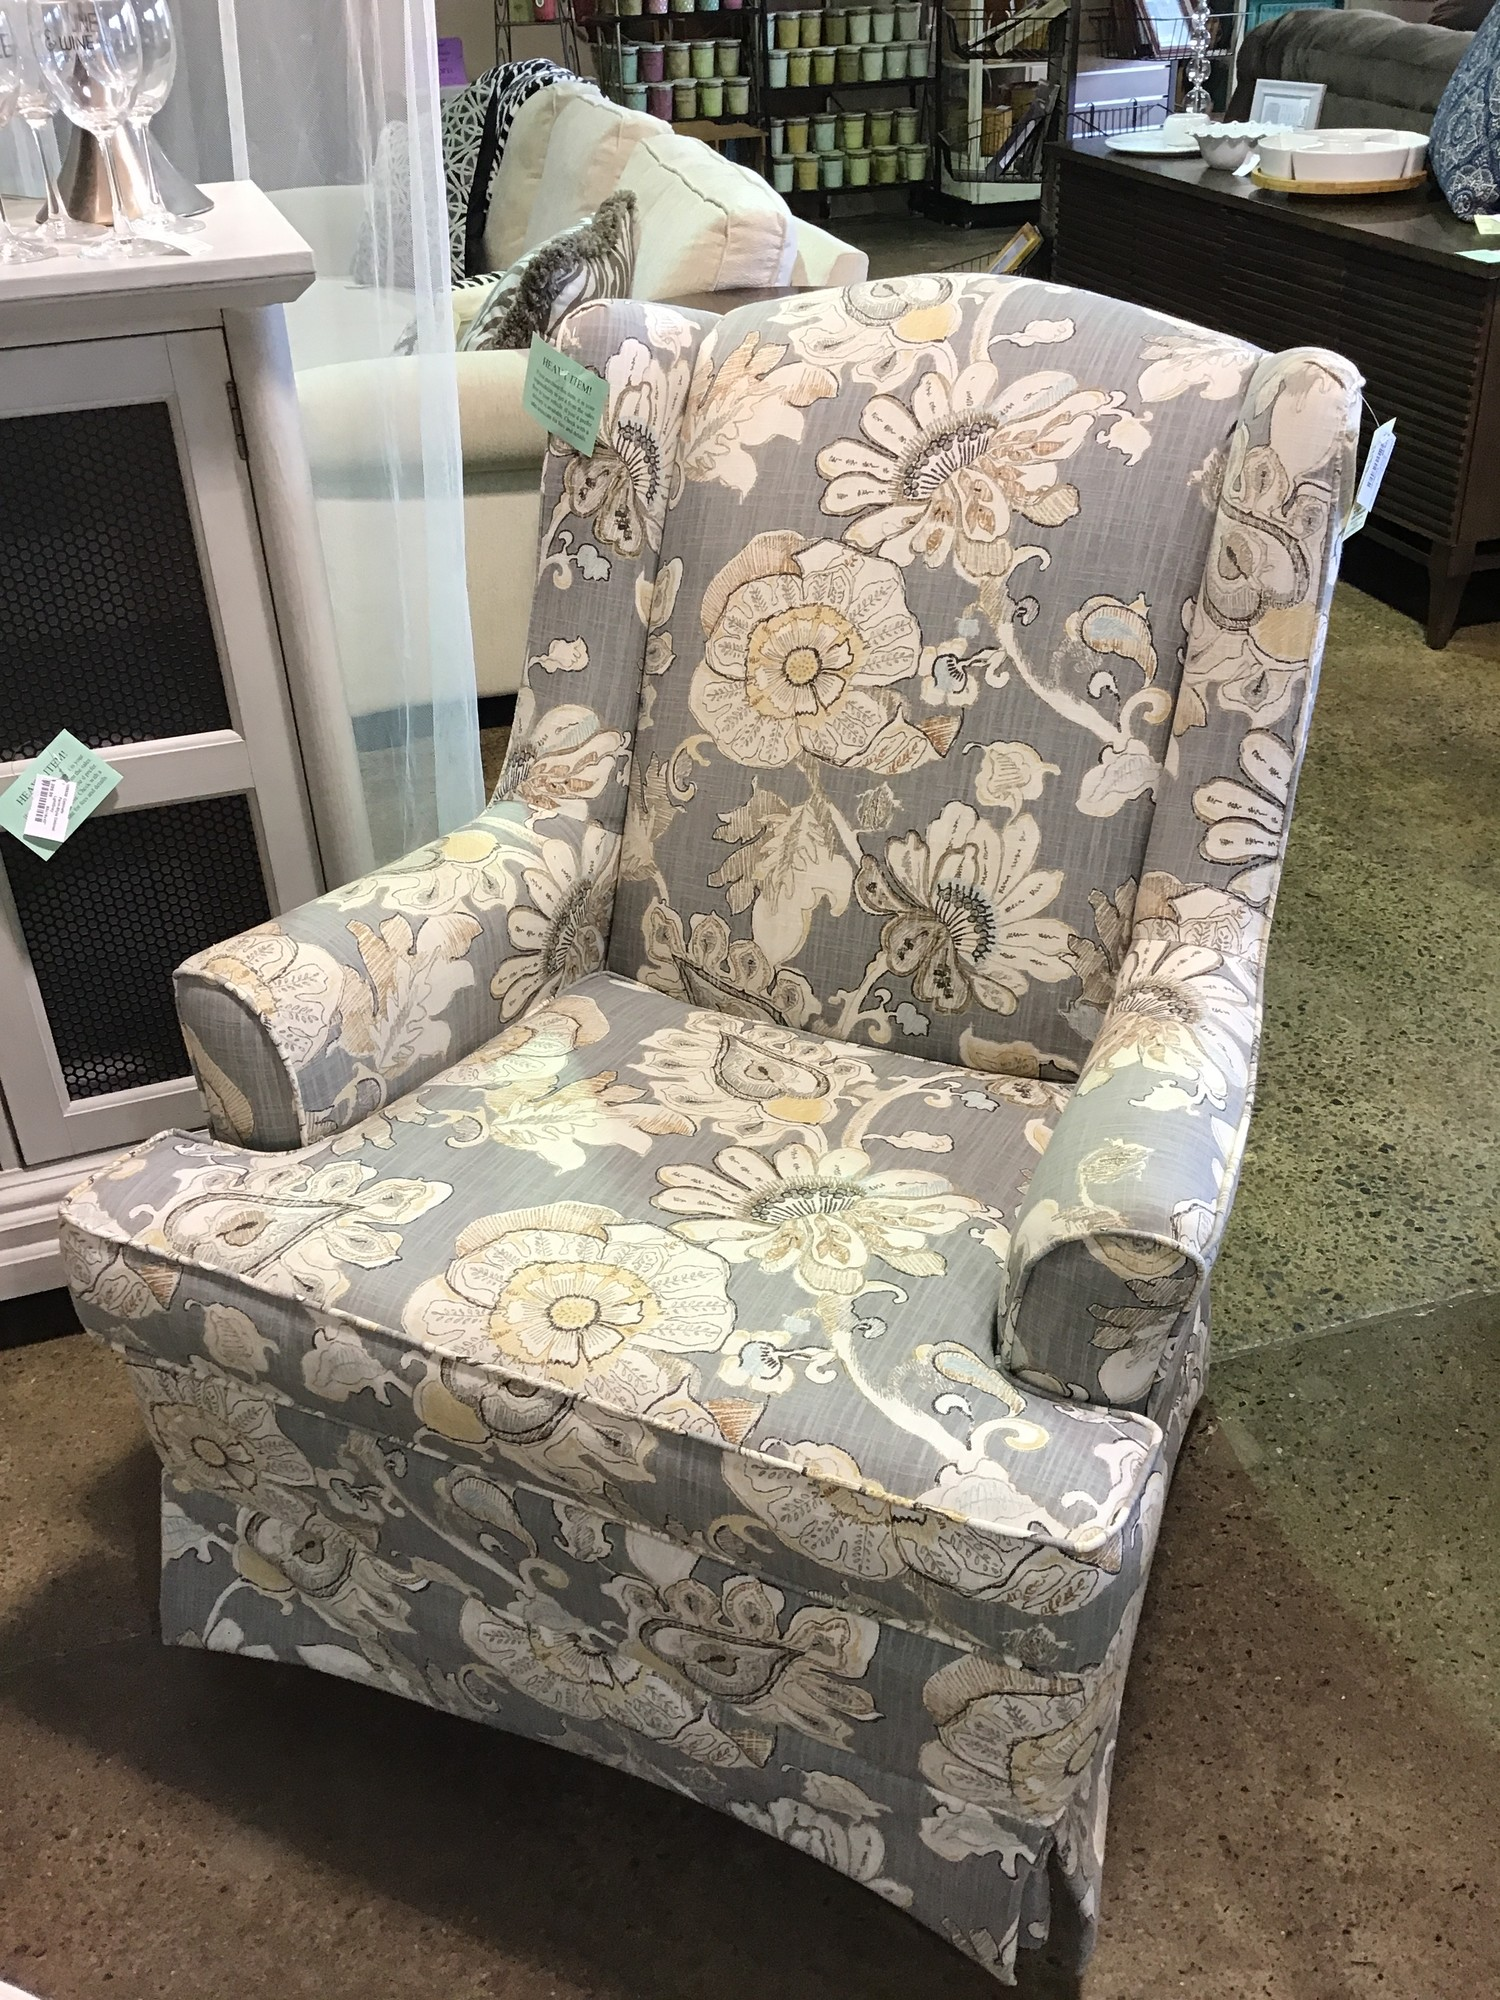 "This beautifully upholstered chair is a swivel rocker (our favorite!) and is very neutral. It has accents of yellow and teal along with the gray & cream fabric. Super comfortable and the bottom cushion is flippable! It was made by Best Chair Inc.<br /> Dimensions are 32"" x 36"" x 40"""